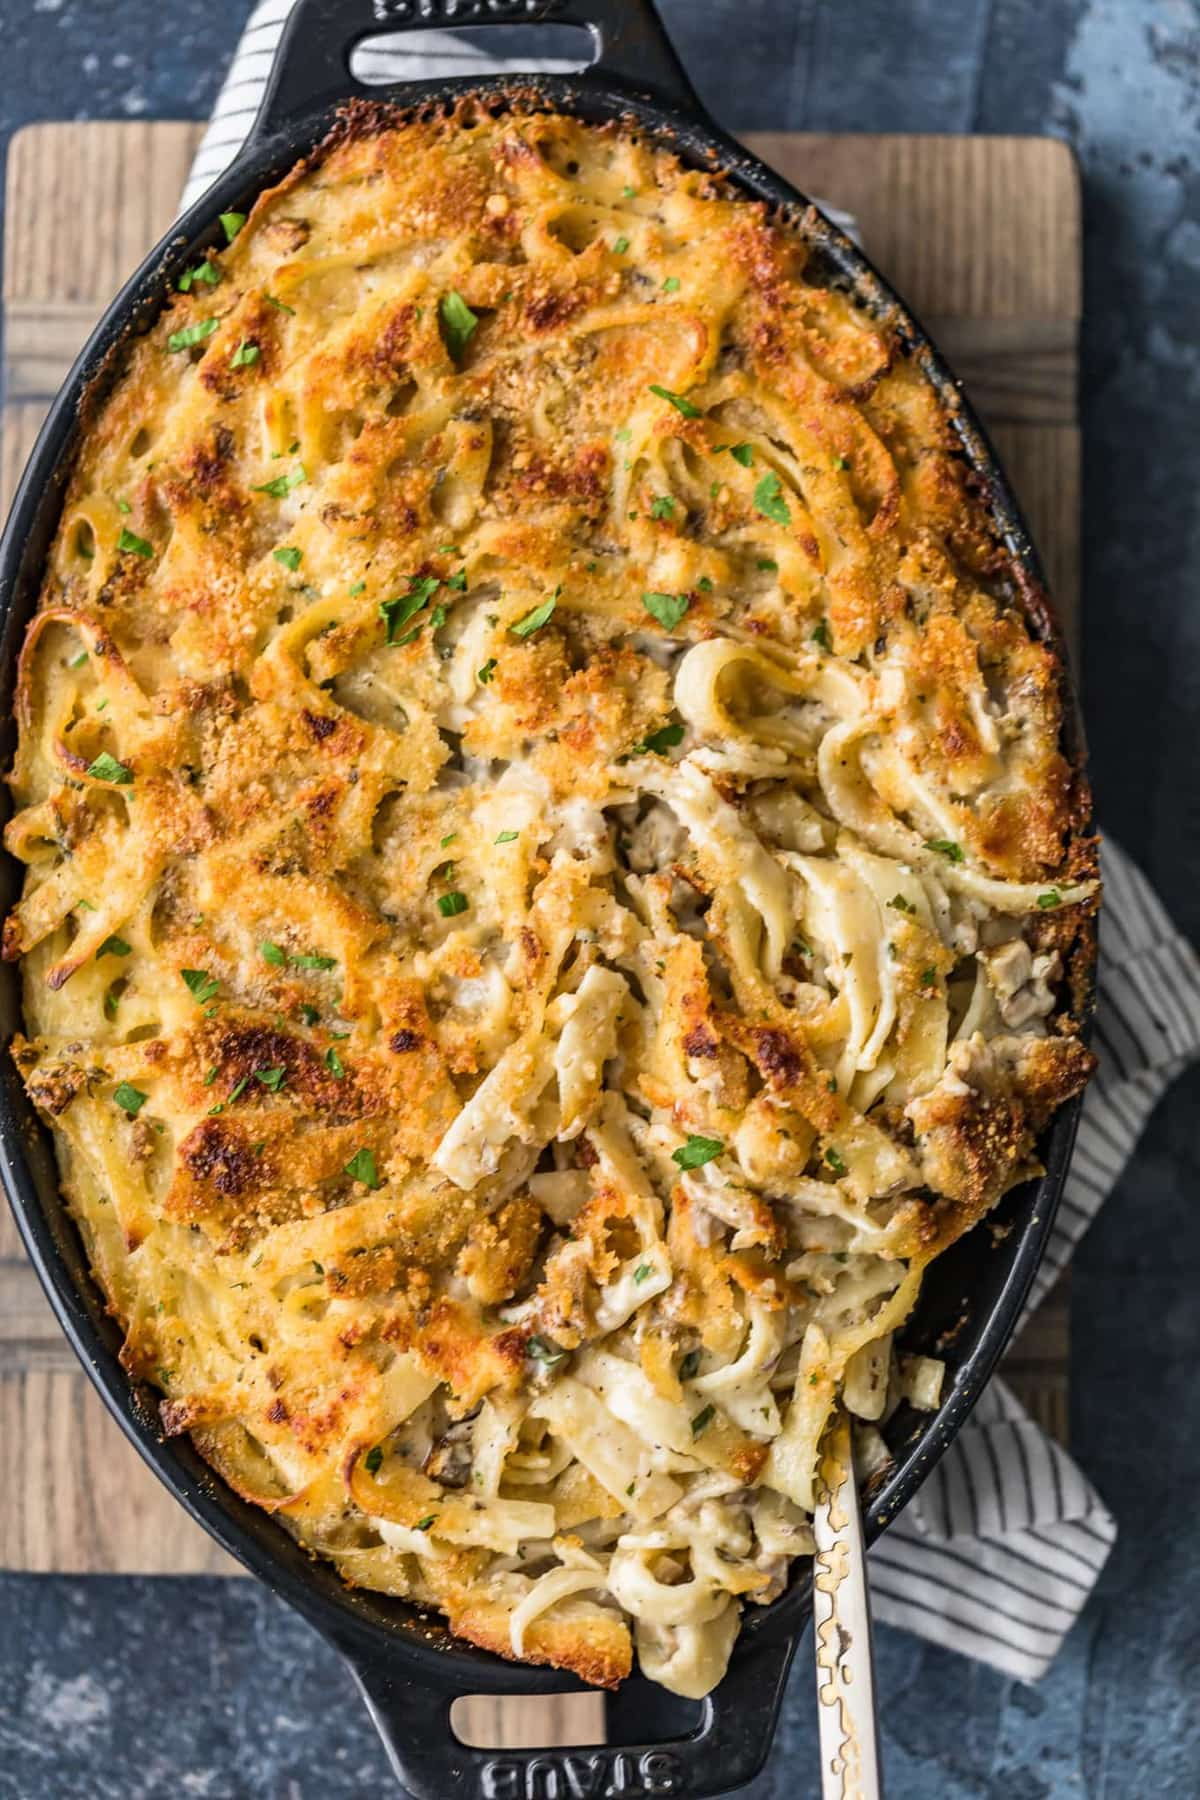 Top shot of baked chicken tetrazzini